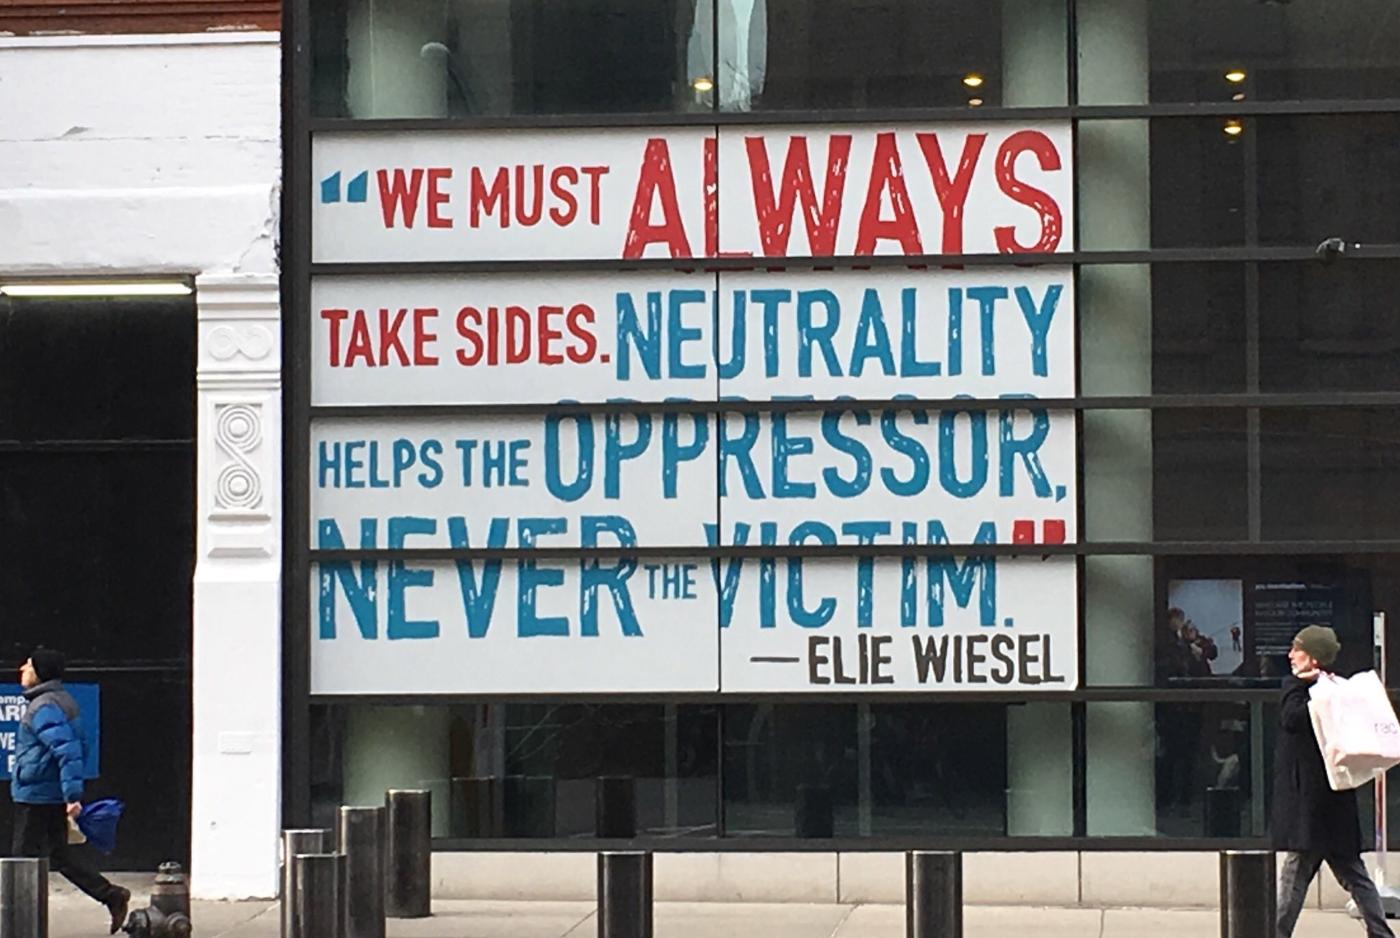 Poster in a window: We must always take sides. Neutrality helps the oppressor, never the victim. Elie Wiesel.